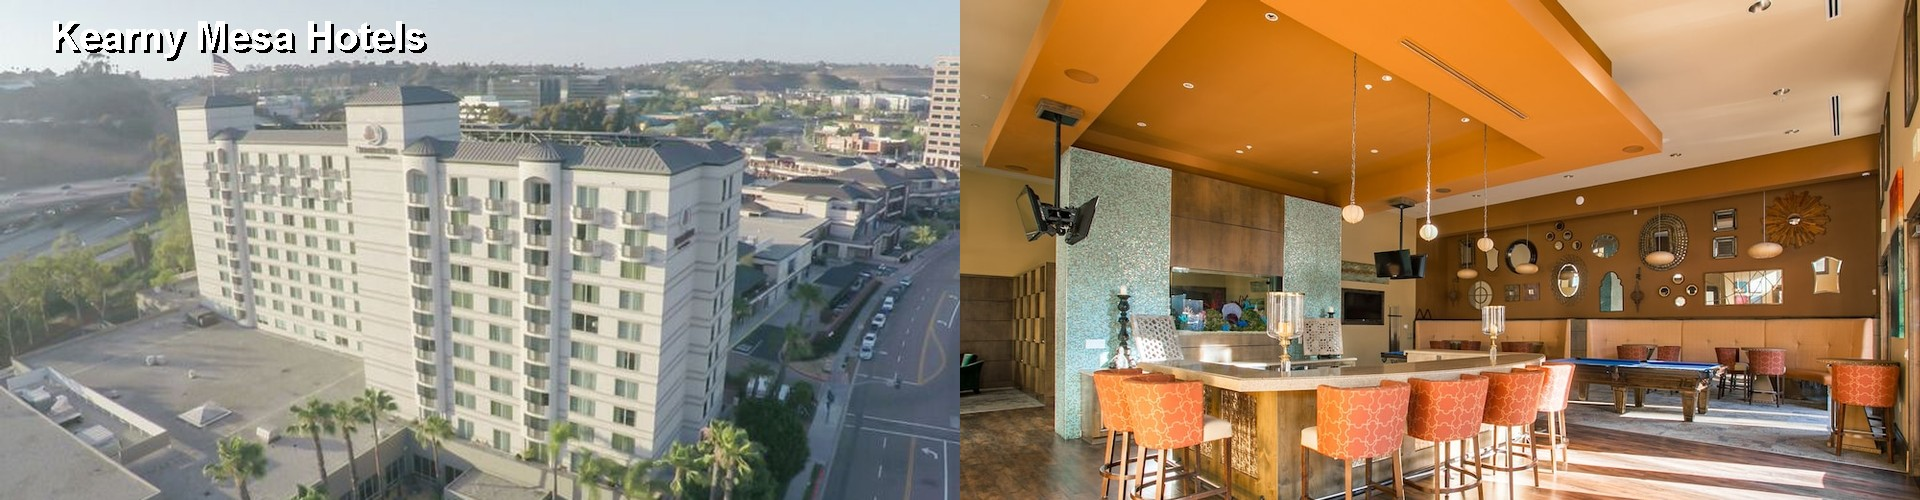 5 Best Hotels near Kearny Mesa